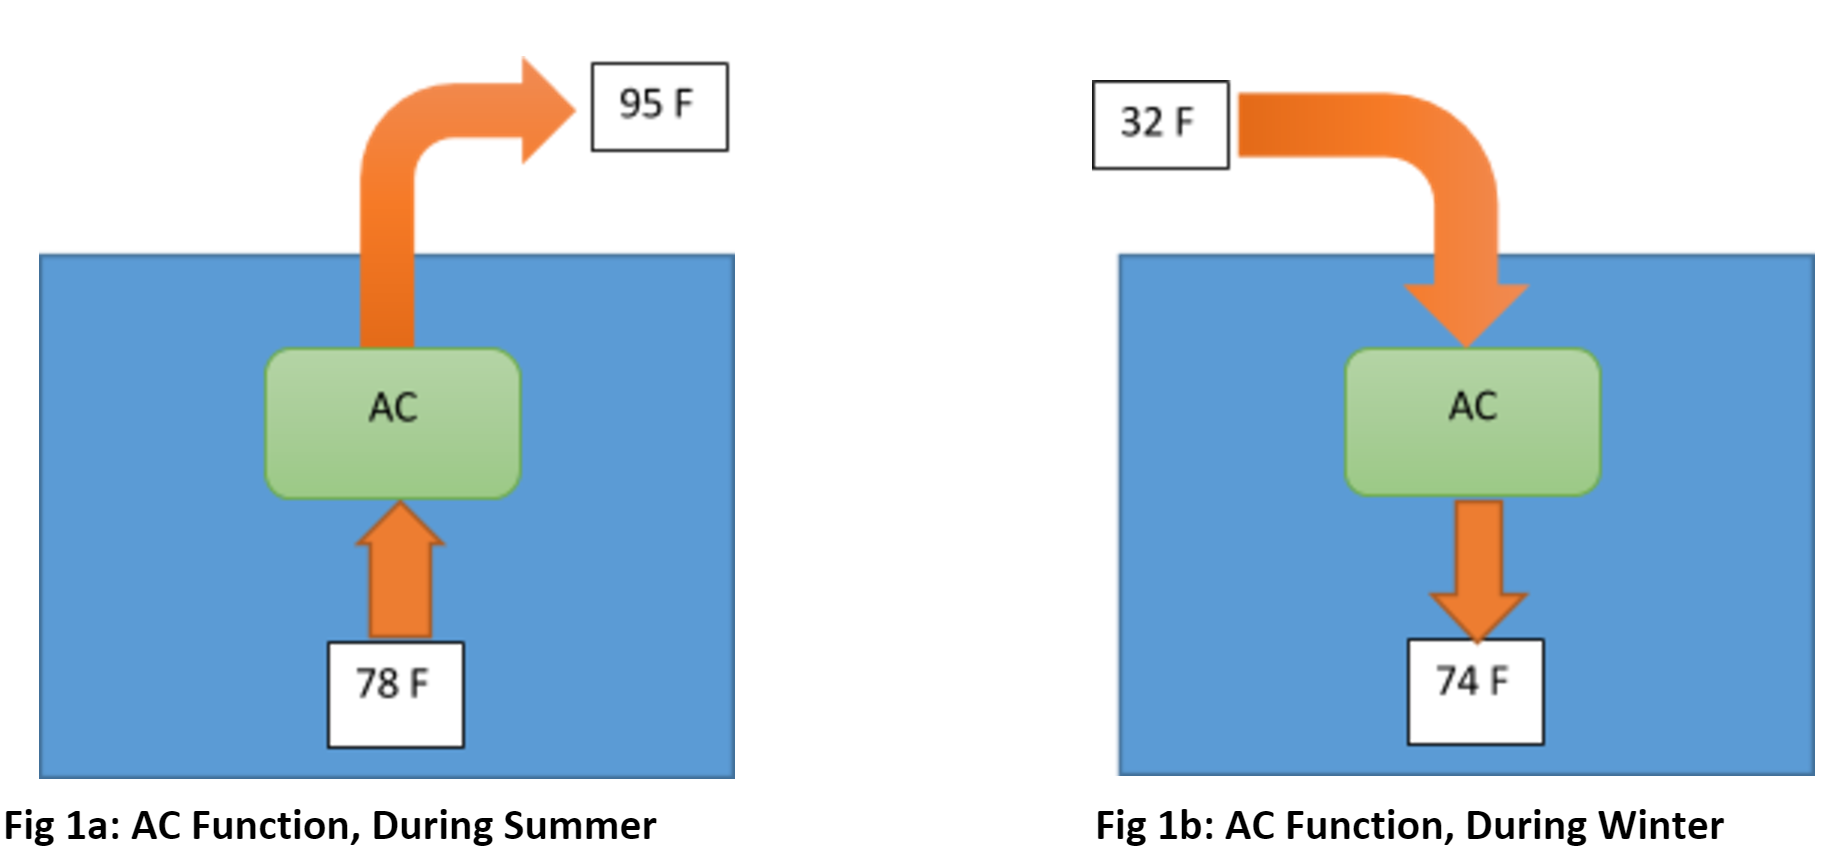 AC function during summer and winter